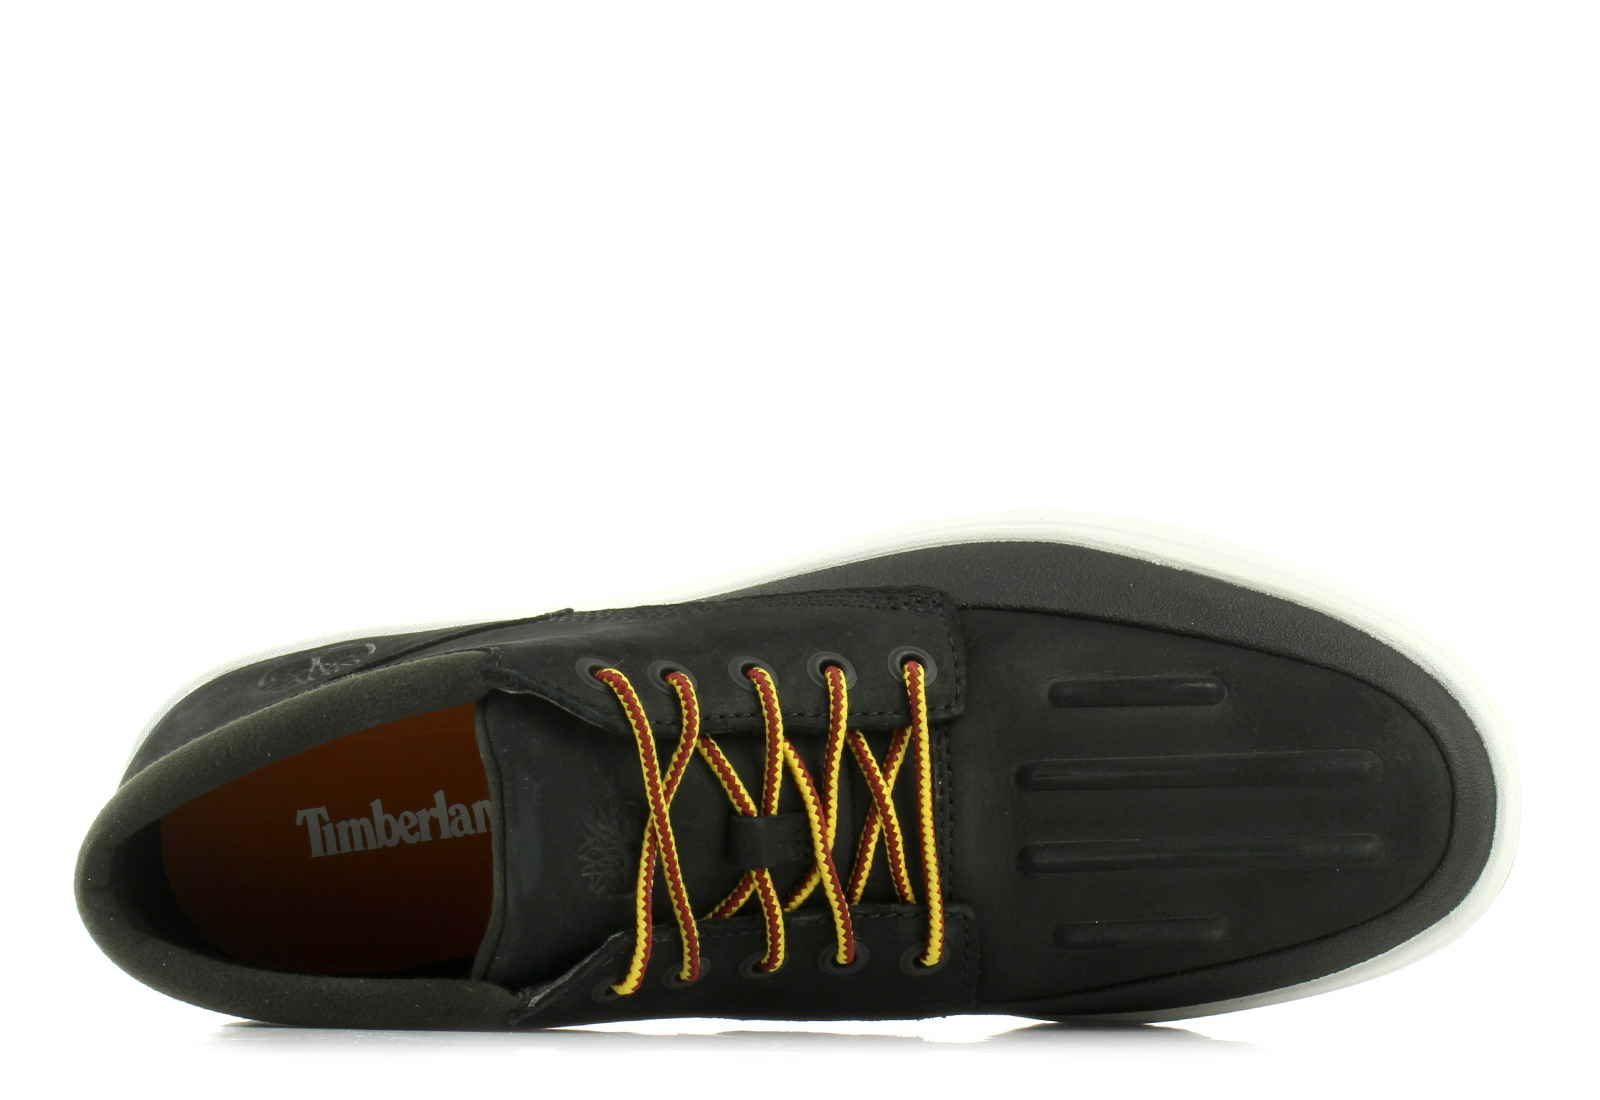 Blk Shop Boots David Square For Timberland Online Shoes A1u6w SneakersAnd Sneakers RL5qAj34